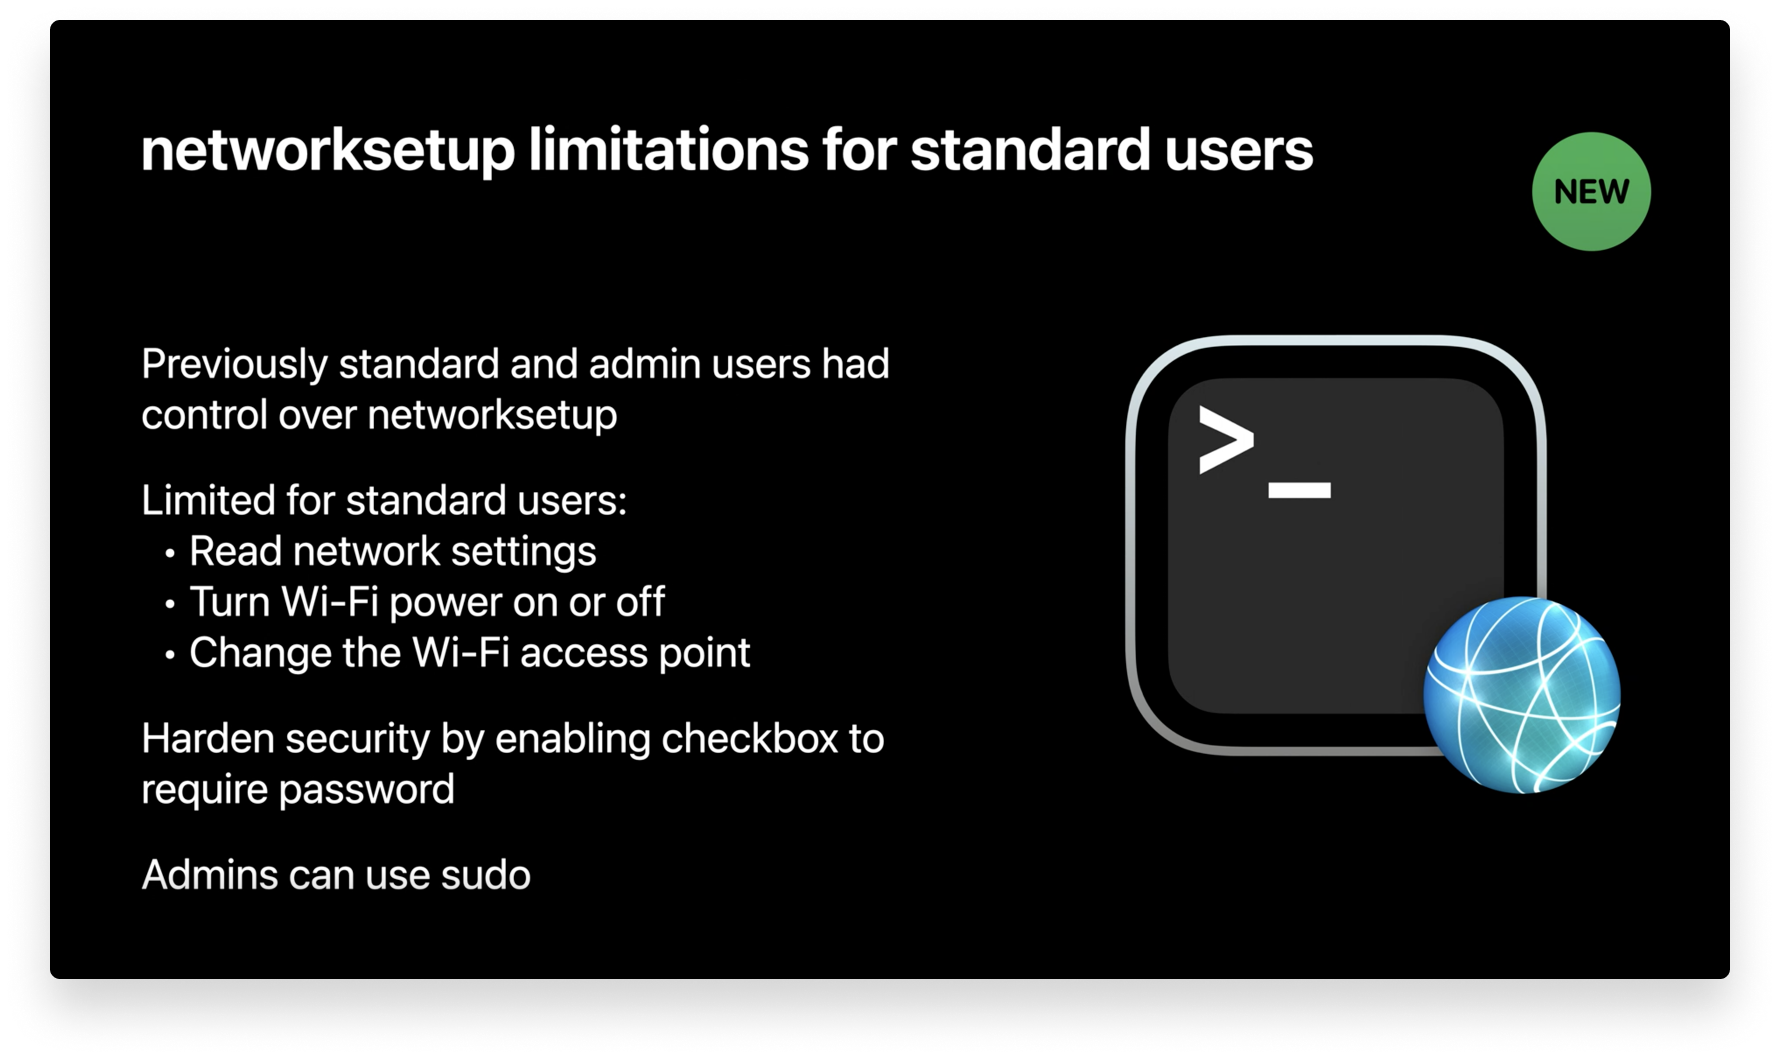 networksetup limitations for standard users